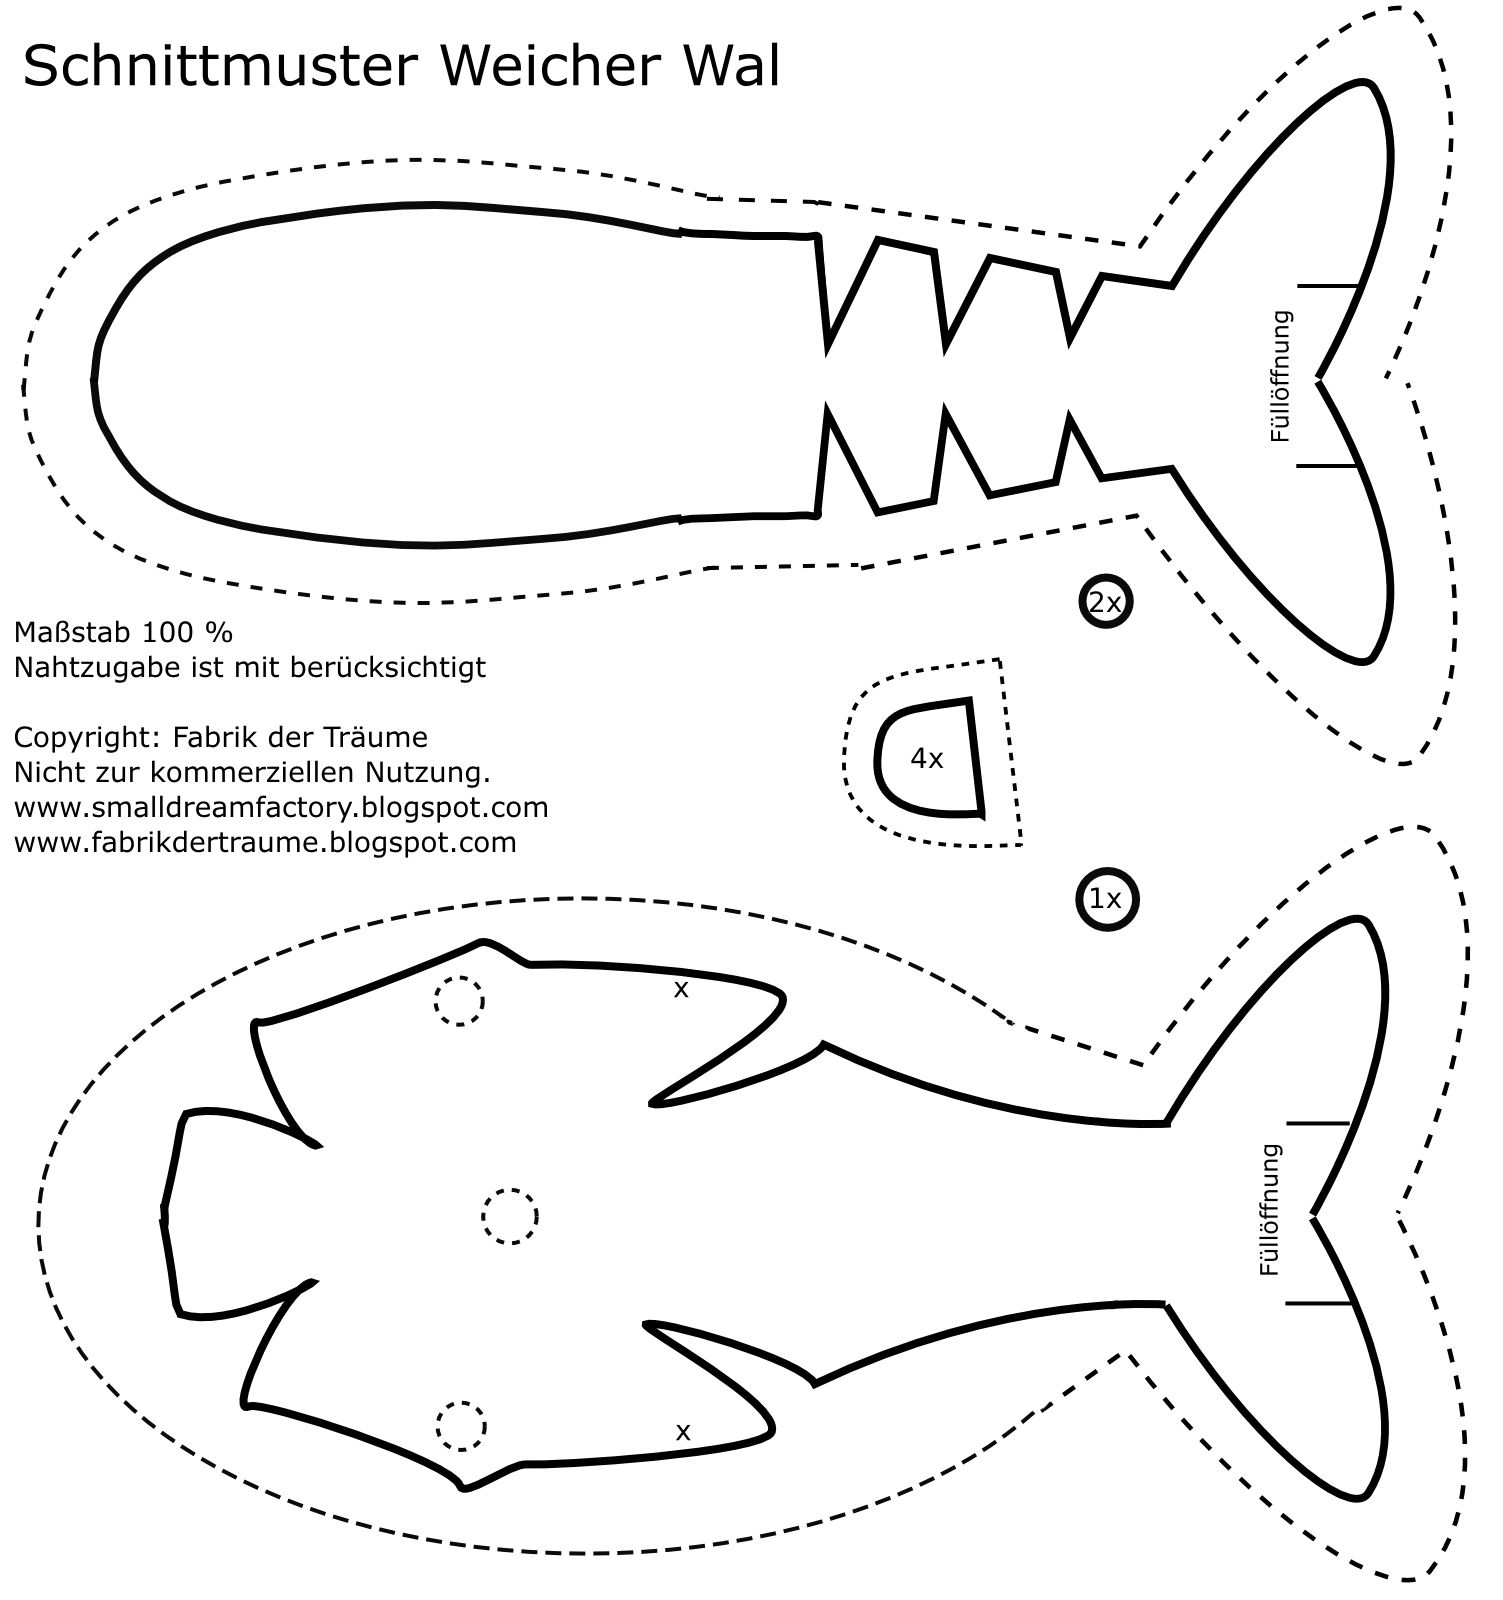 Kostenloses schnittmuster fr einen wal stuffed toy pattern lots of neat scandinavian style clothes patterns here too small dreamfactory free sewing patterns babyclothing and softies free pattern softie whale jeuxipadfo Image collections